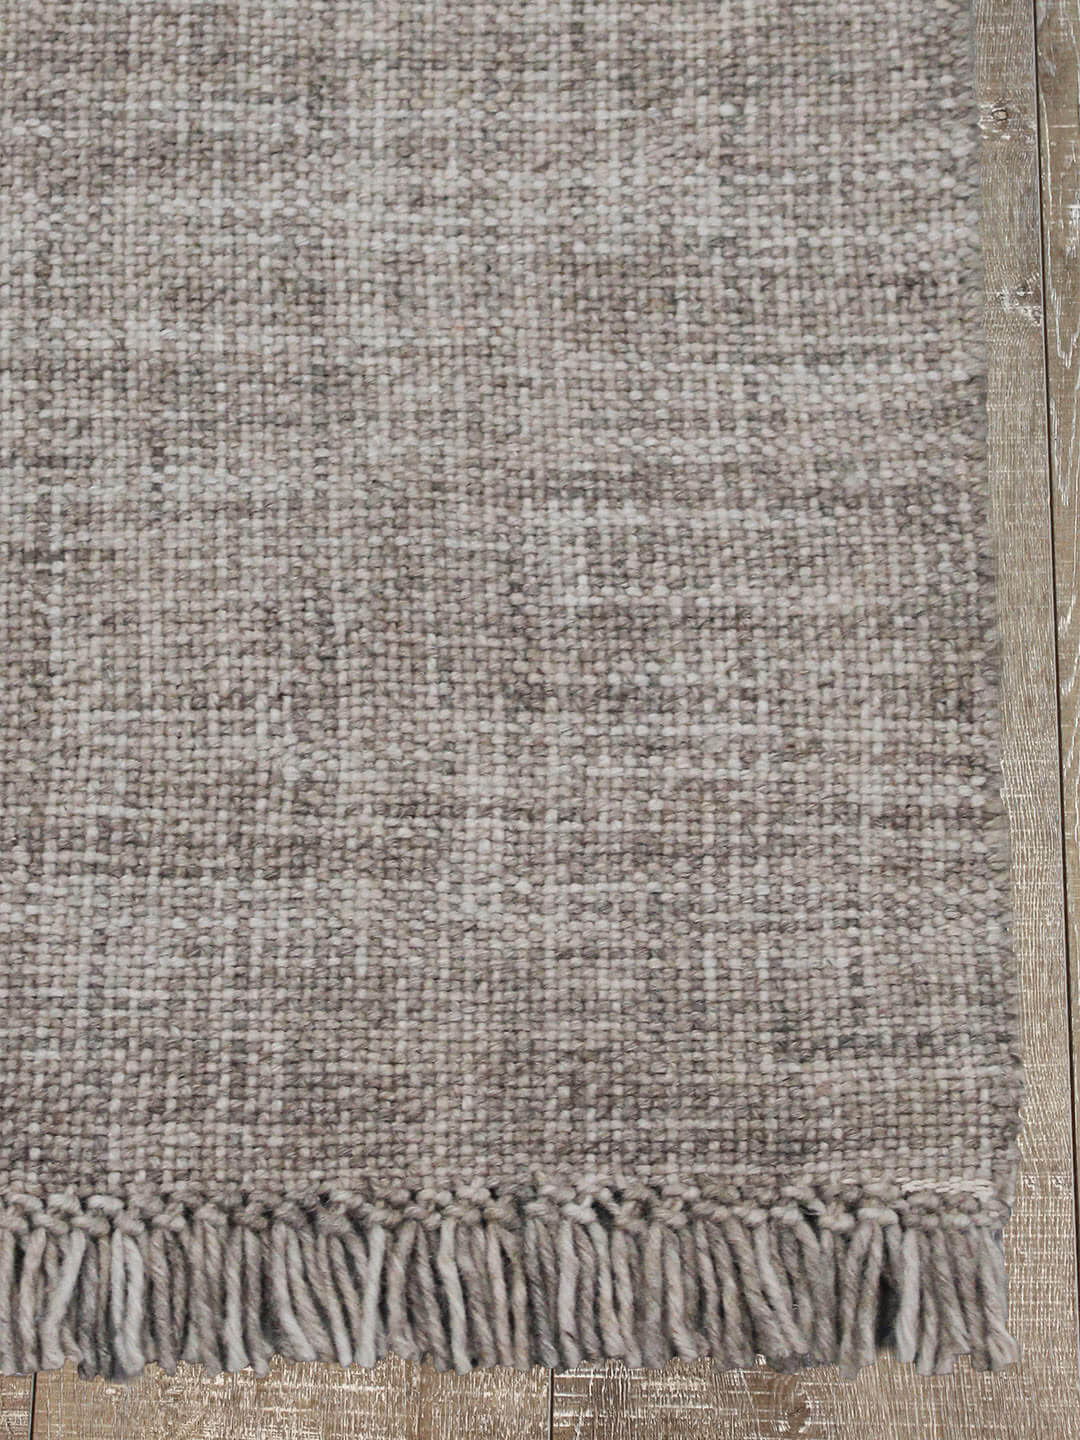 100-percent-hand-woven-wool-indian-traditional-rugs